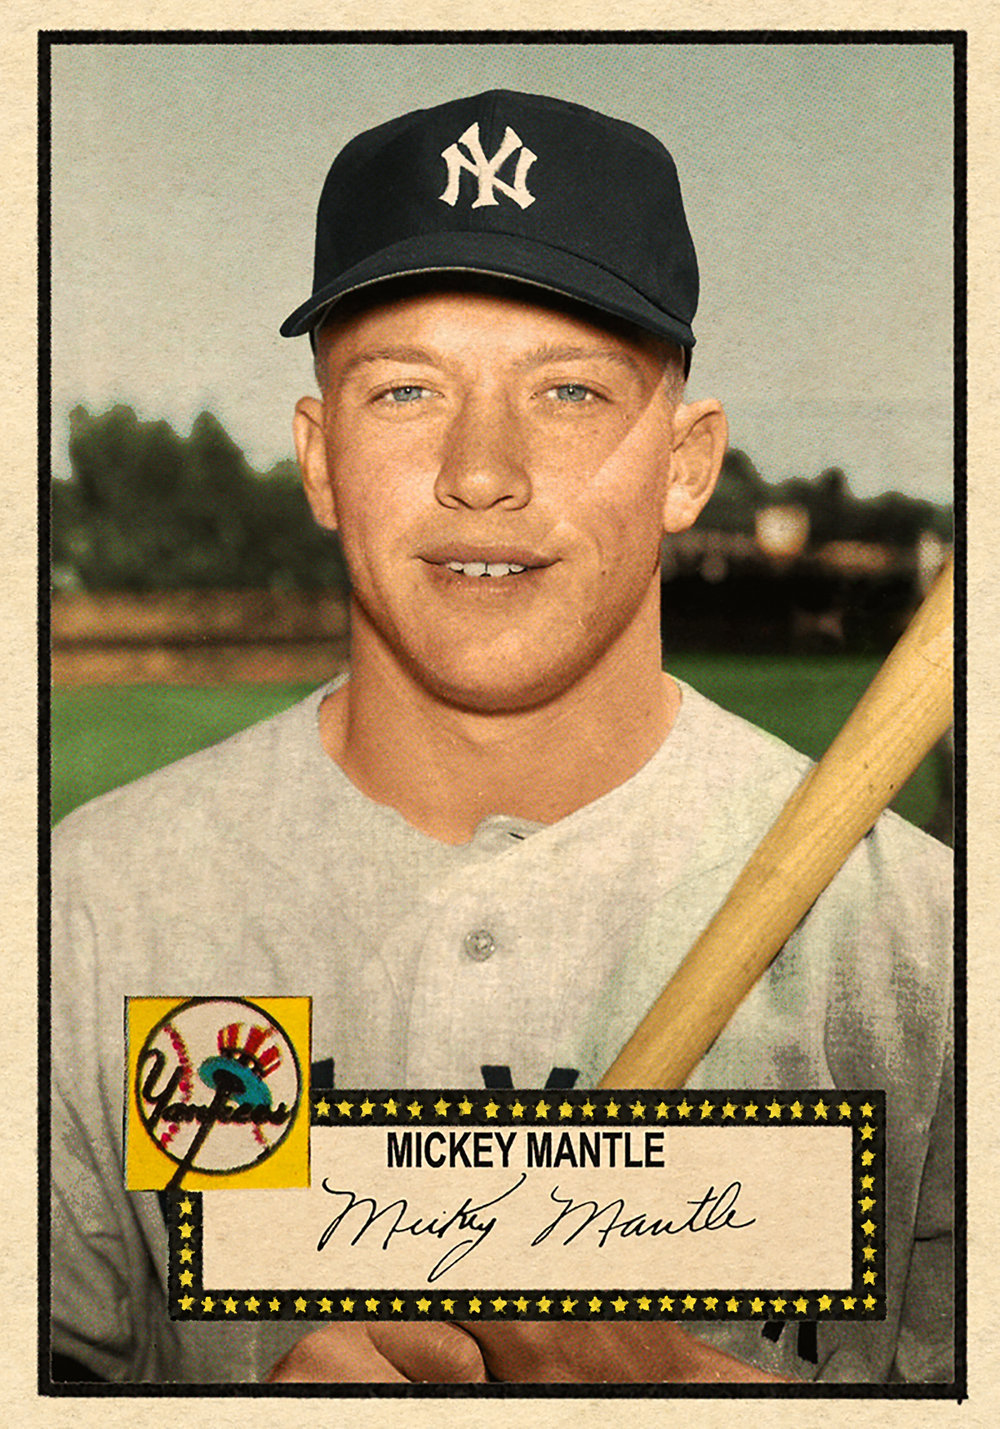 '52 Baseball #223 MICKEY MANTLE HI# - Card is highlighted with Mick's